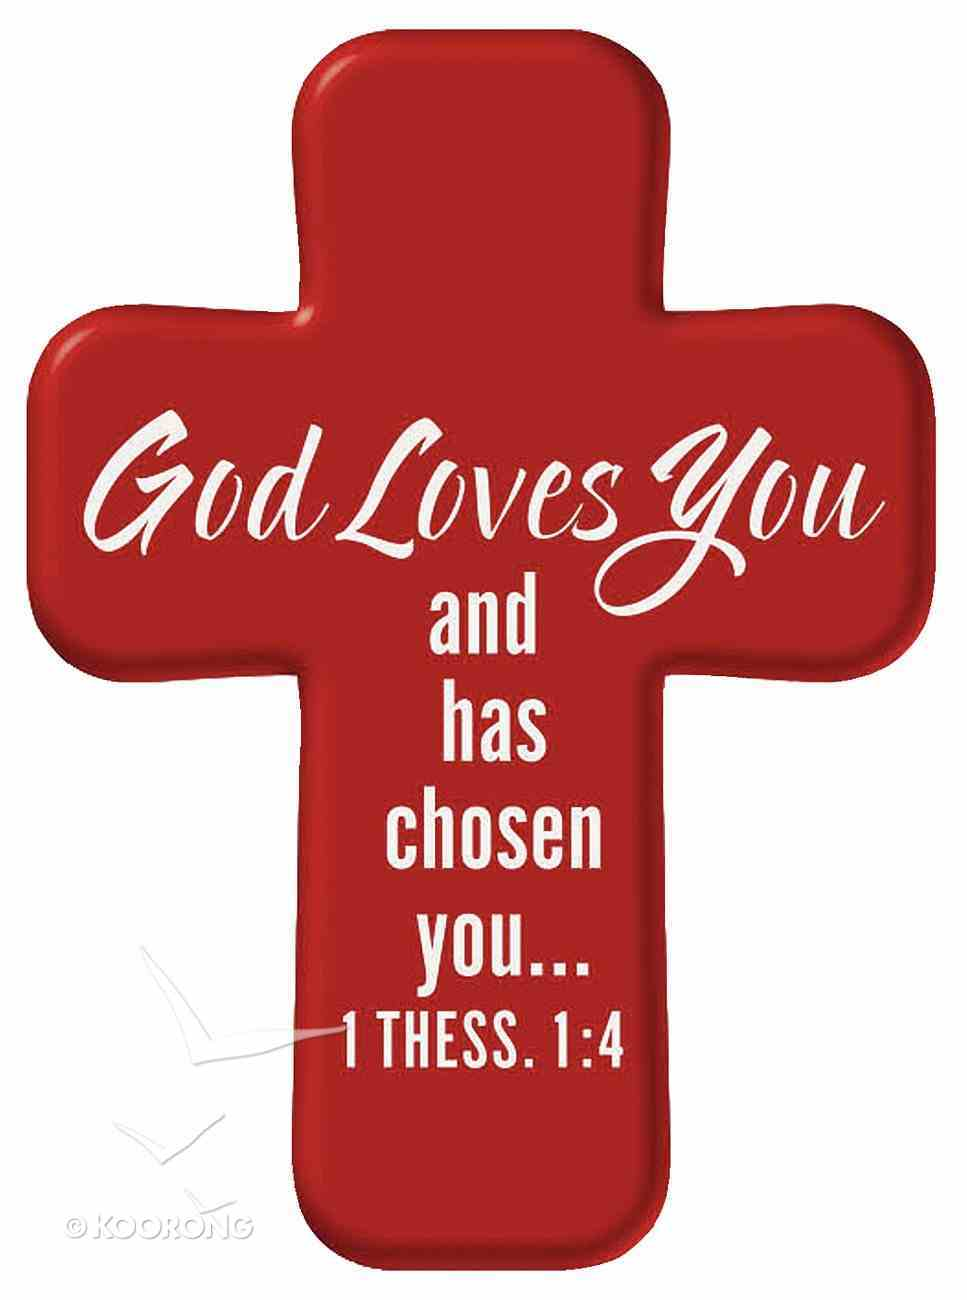 Squeezable Foam Rubber Pocket Cross With Card: God Love You (Red) Homeware